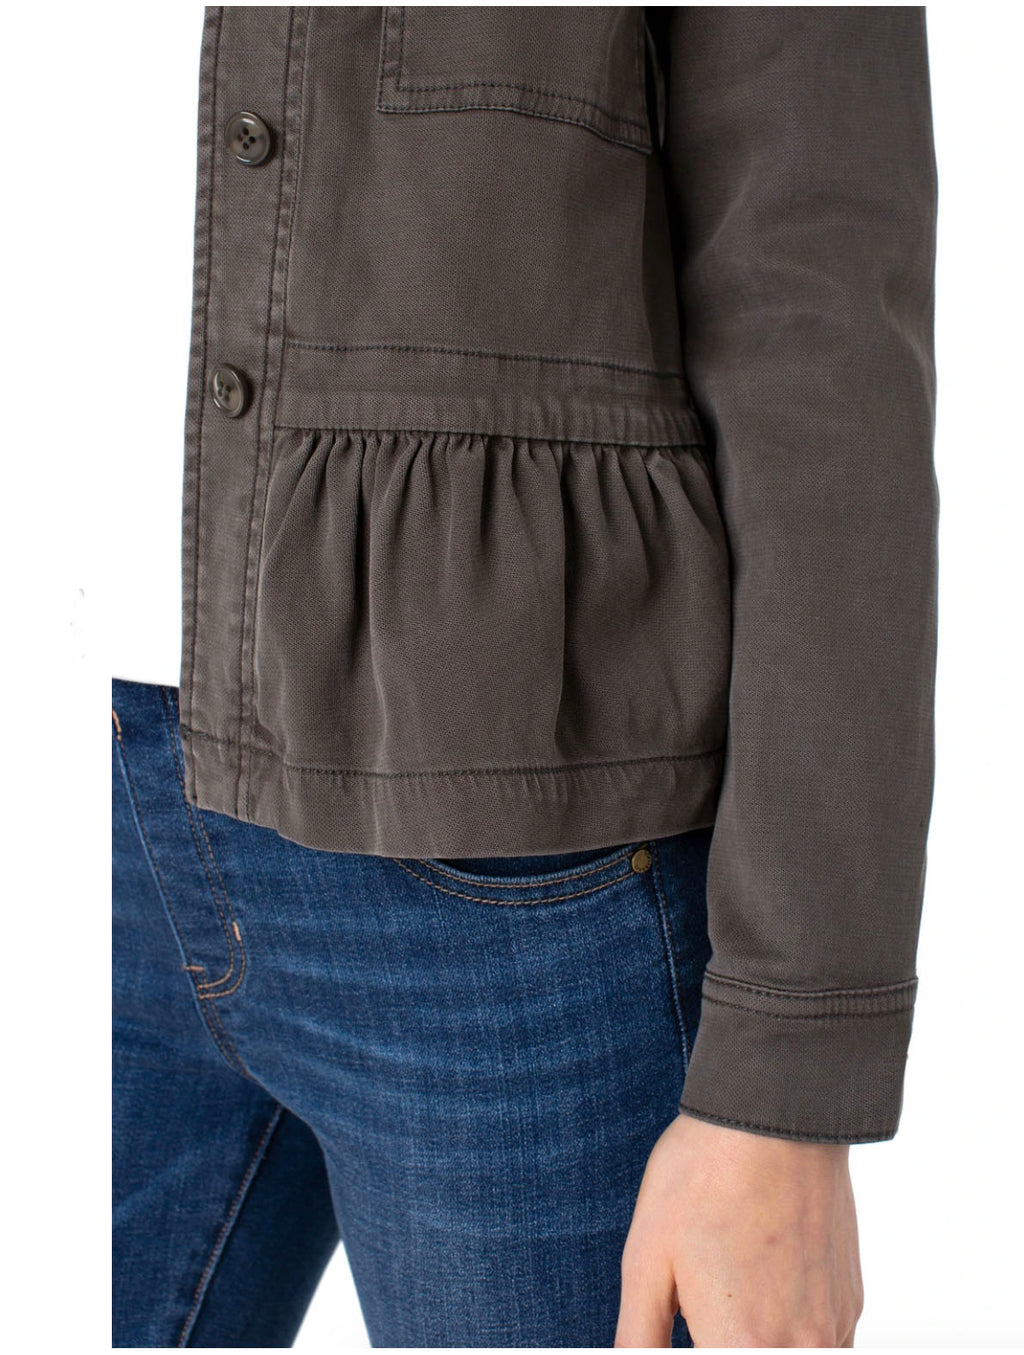 Livepool Peplum Cargo Jacket in Emerald